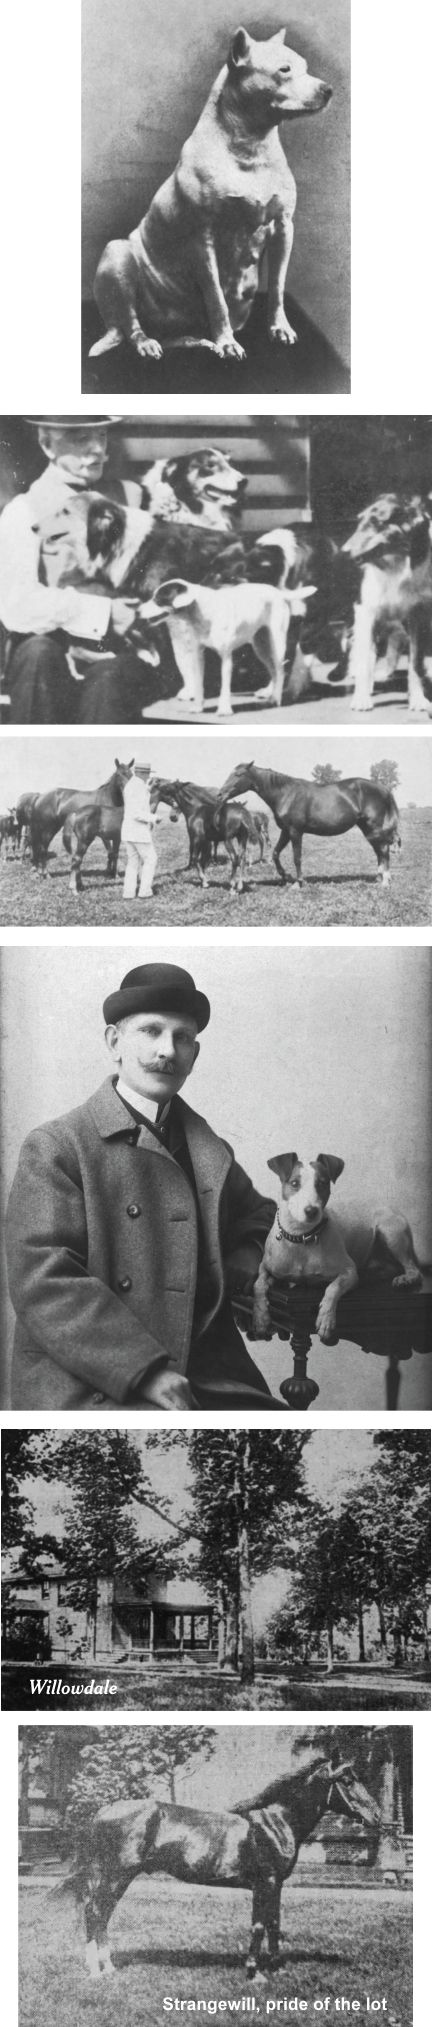 Will Davis and his dogs and horses